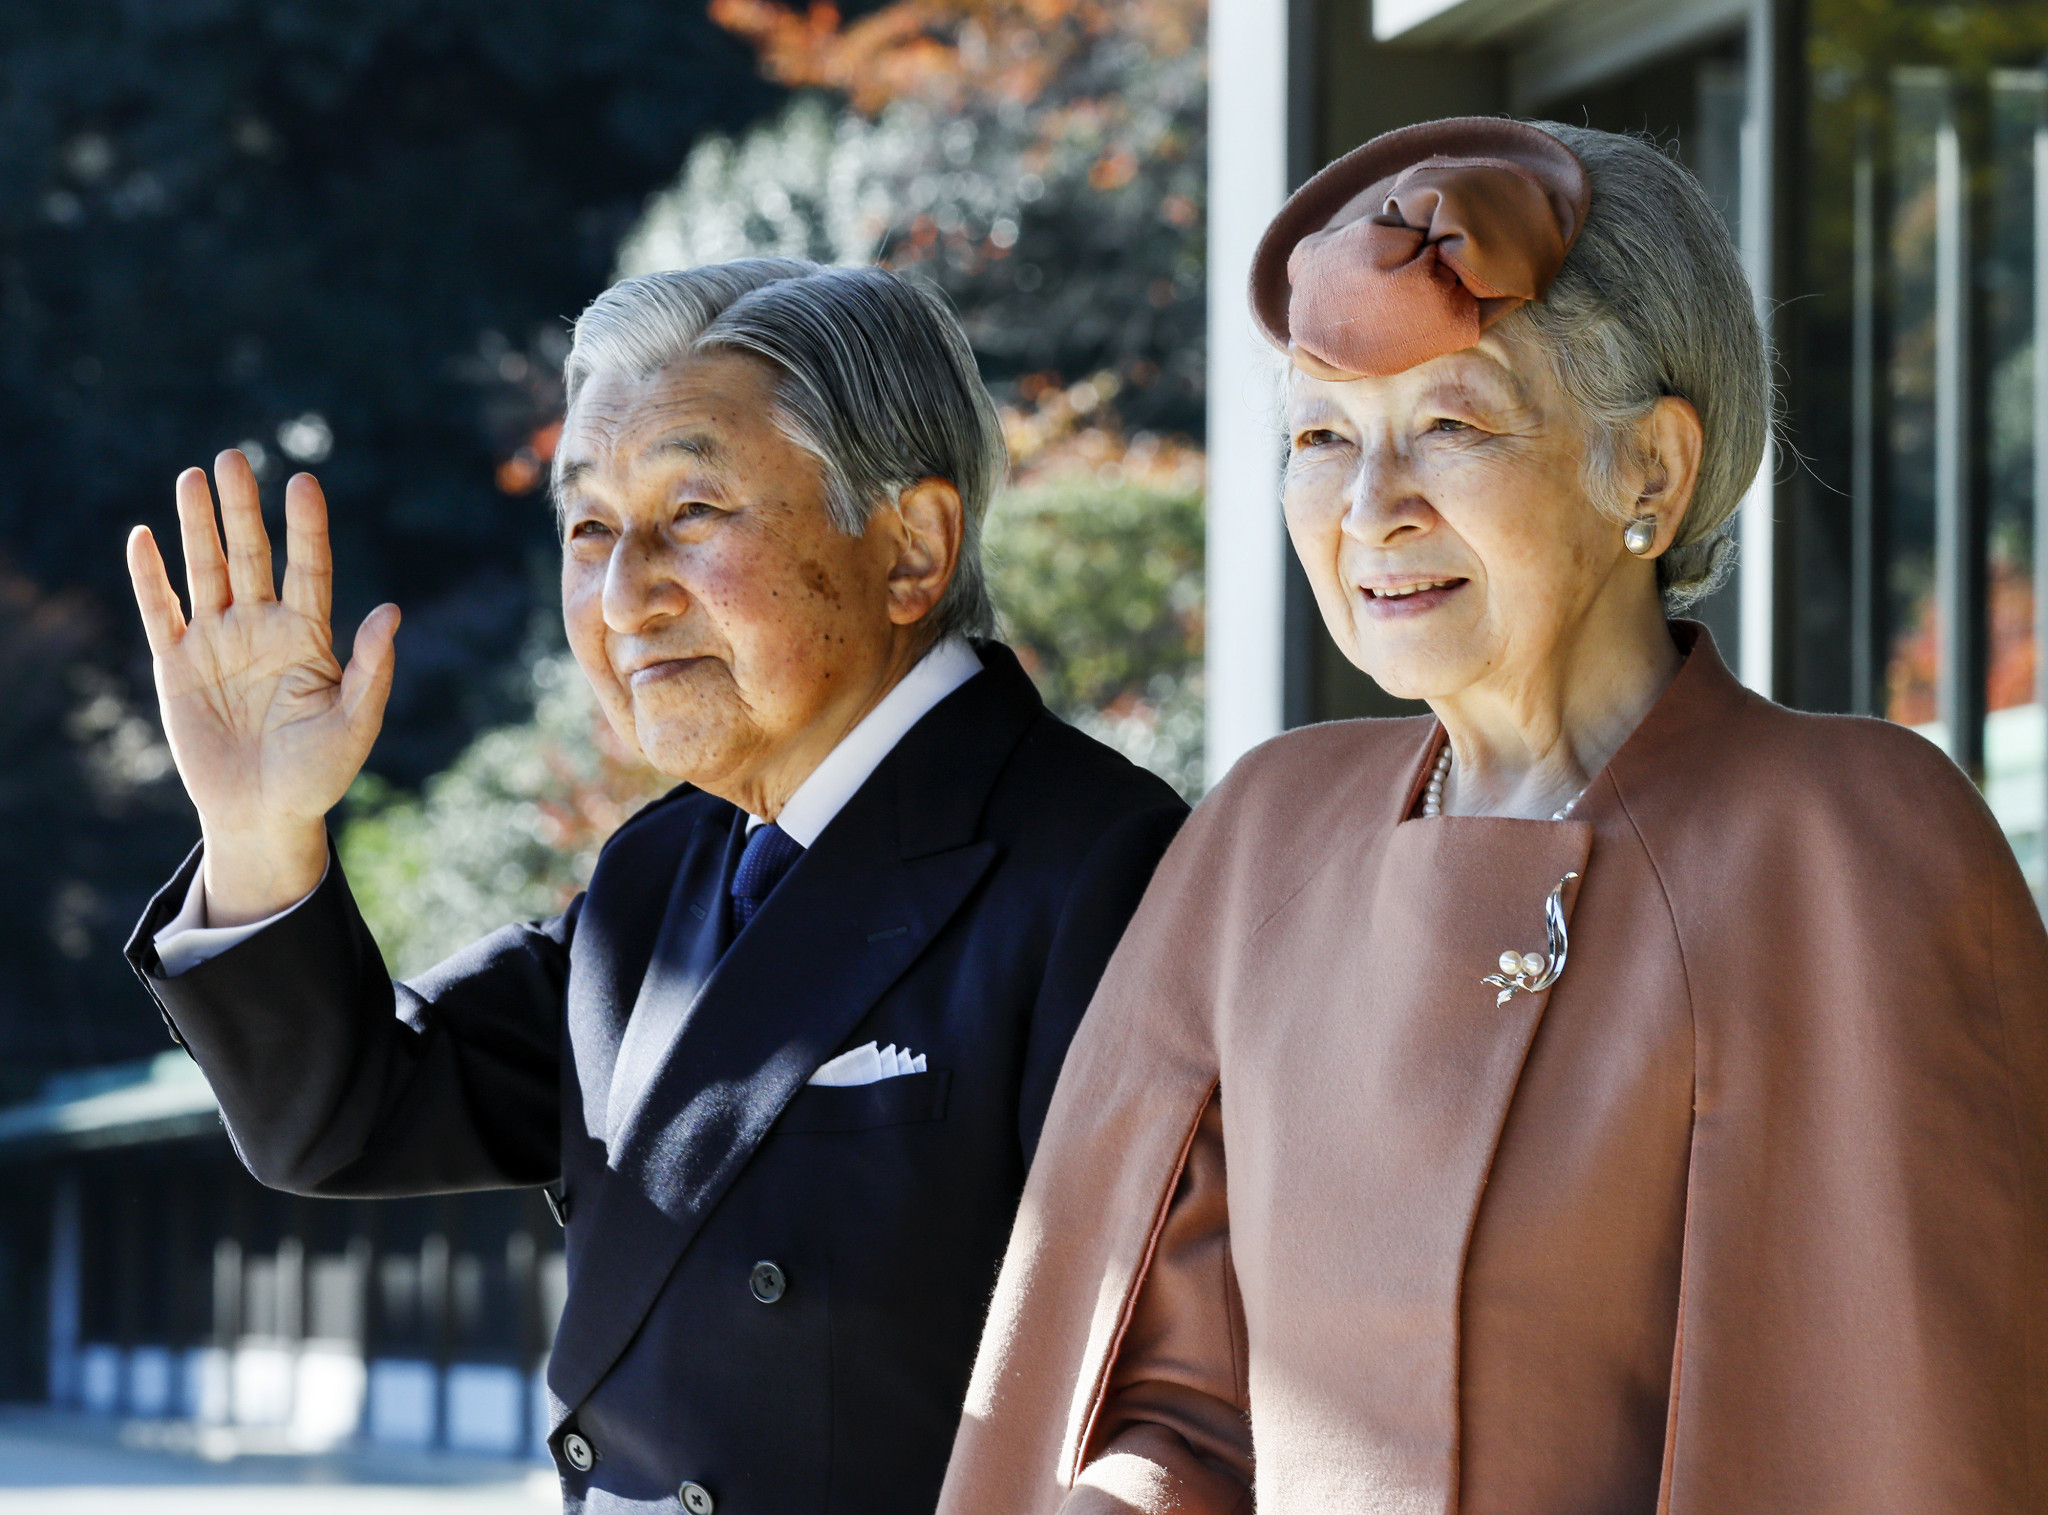 Emperor's abdication means heir will open Tokyo 2020